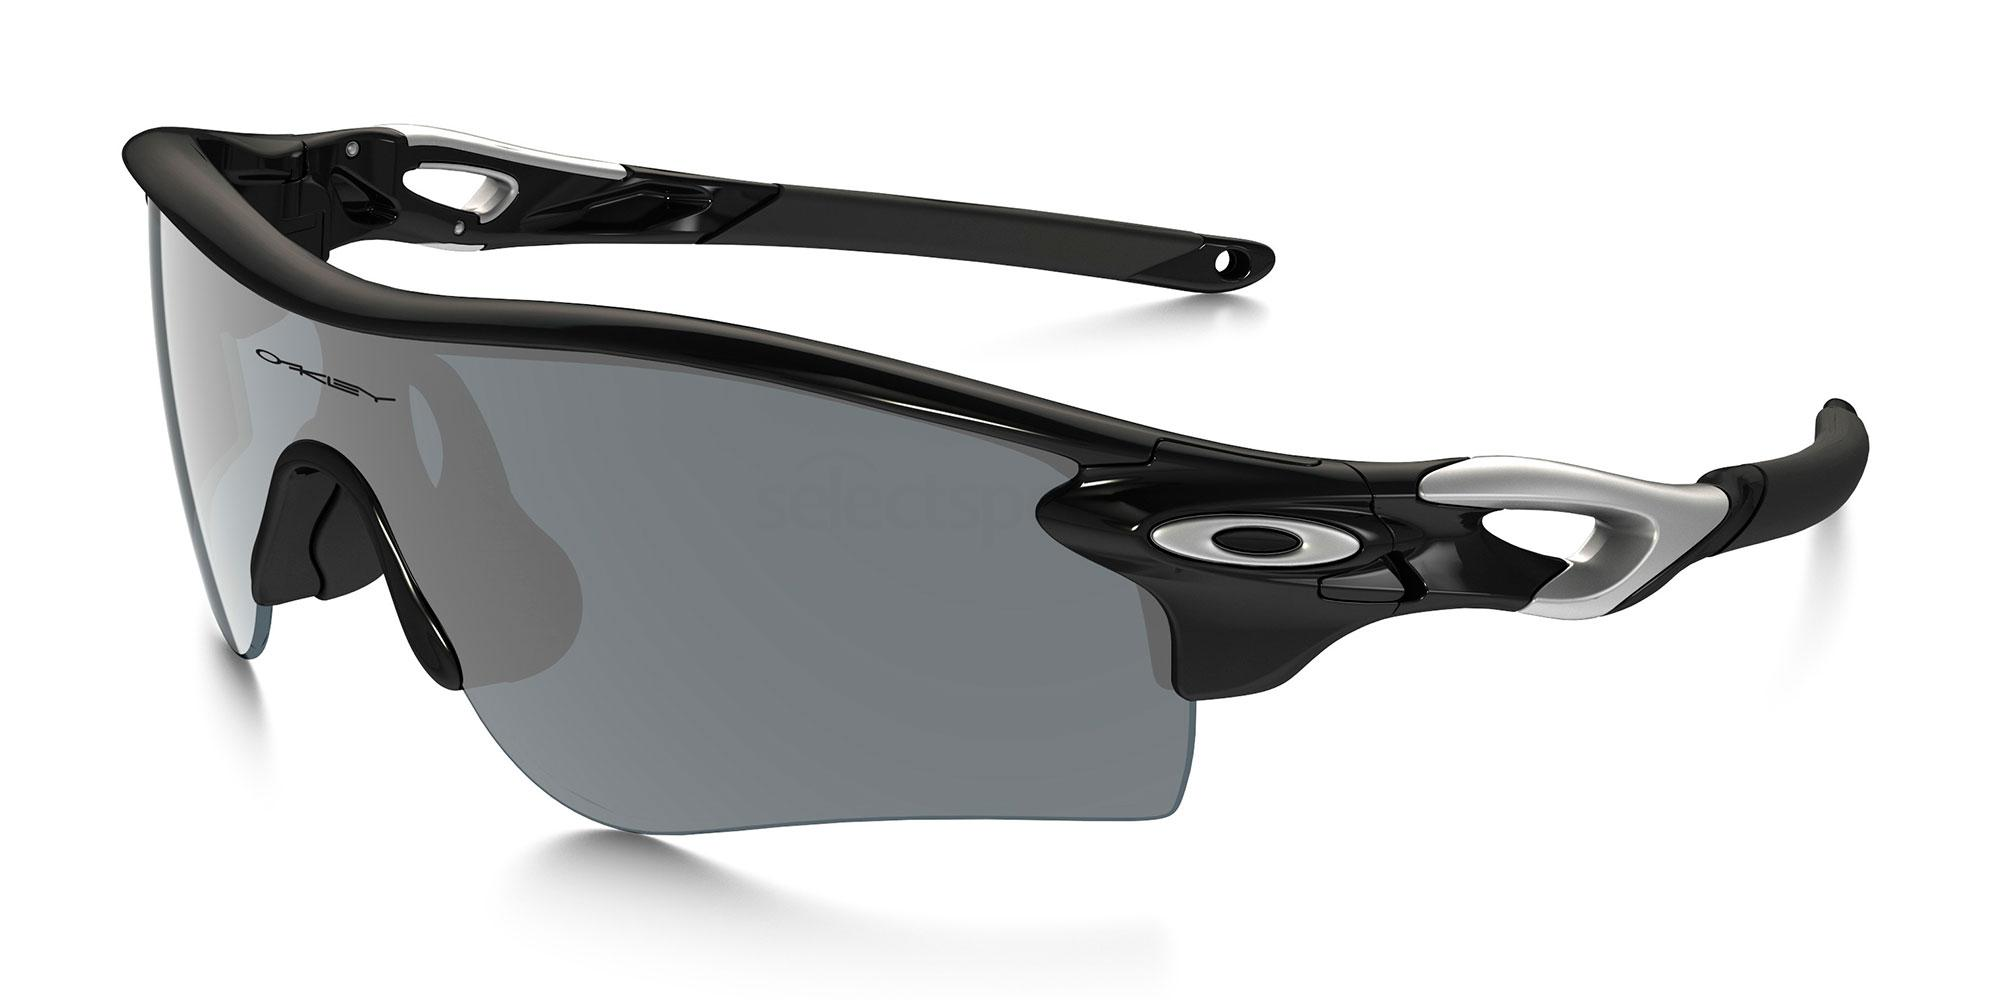 918119 OO9181 RADARLOCK PATH (Standard) (2/2) Sunglasses, Oakley